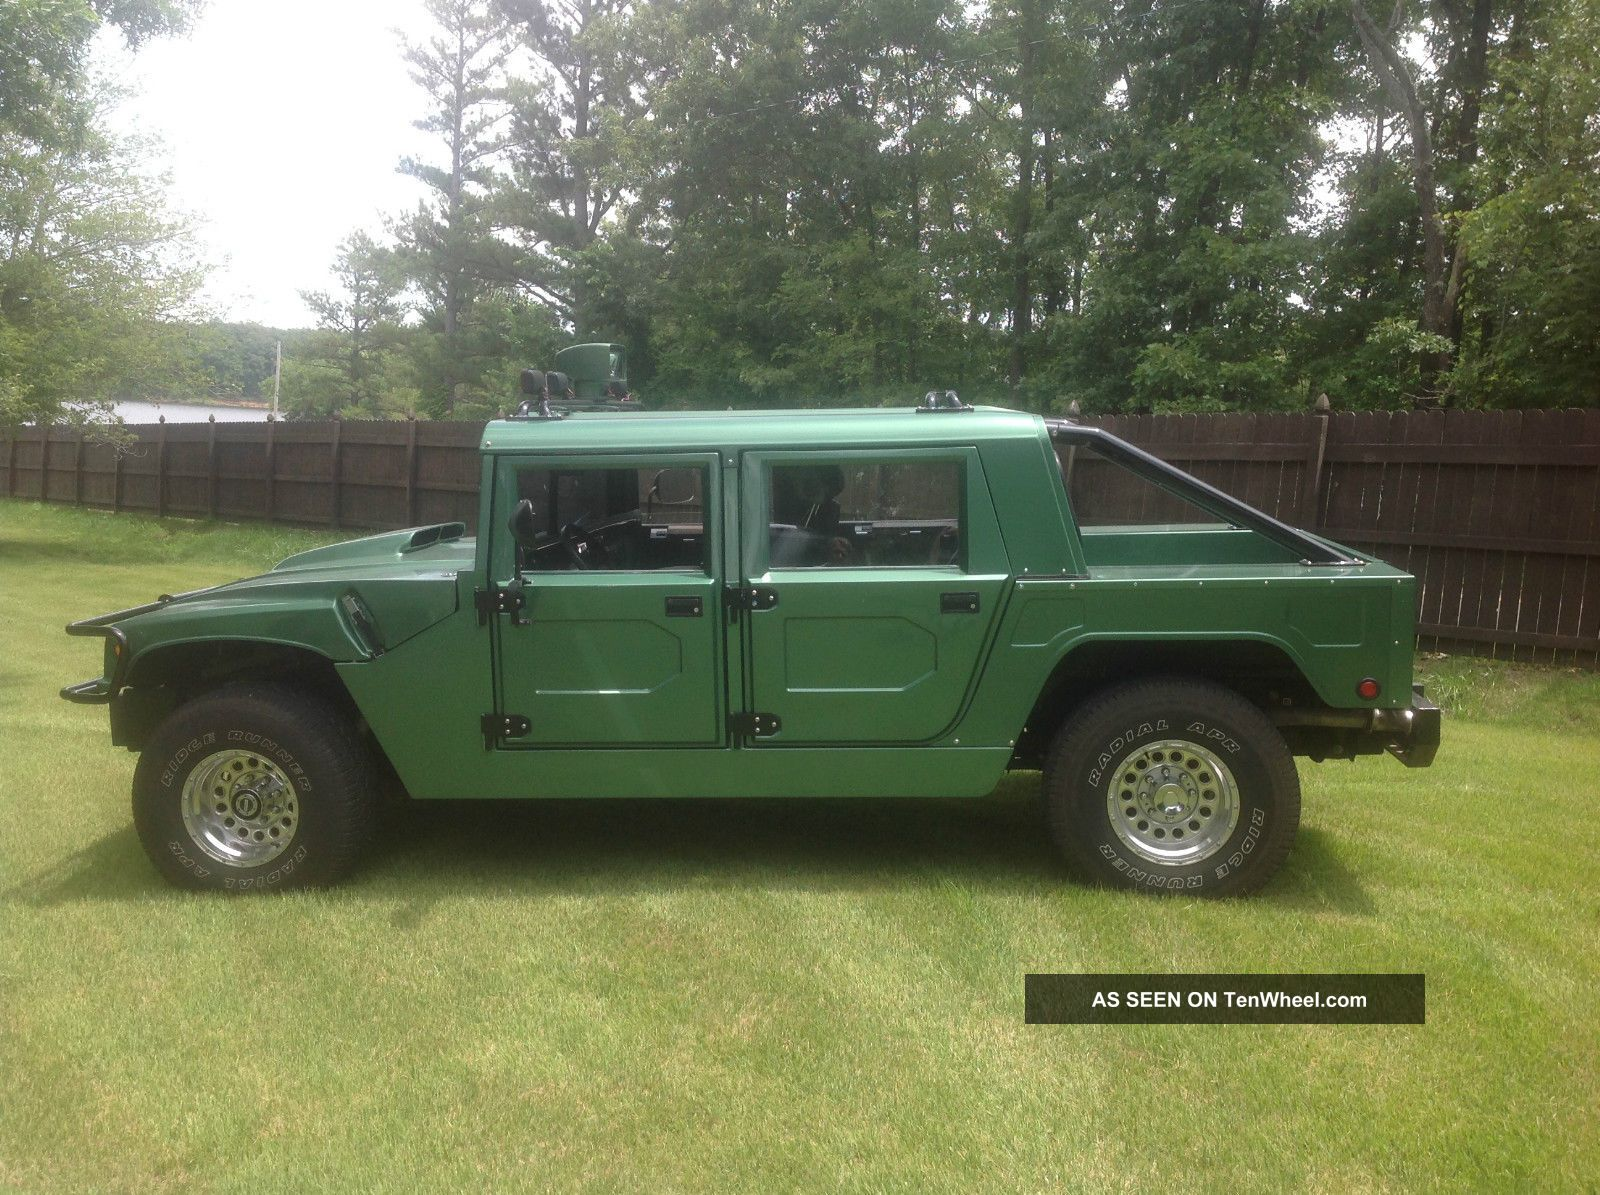 Hummer Replica Titled As A 1985 Chev K20. . .  Built From The Ground Up All Custom Replica/Kit Makes photo